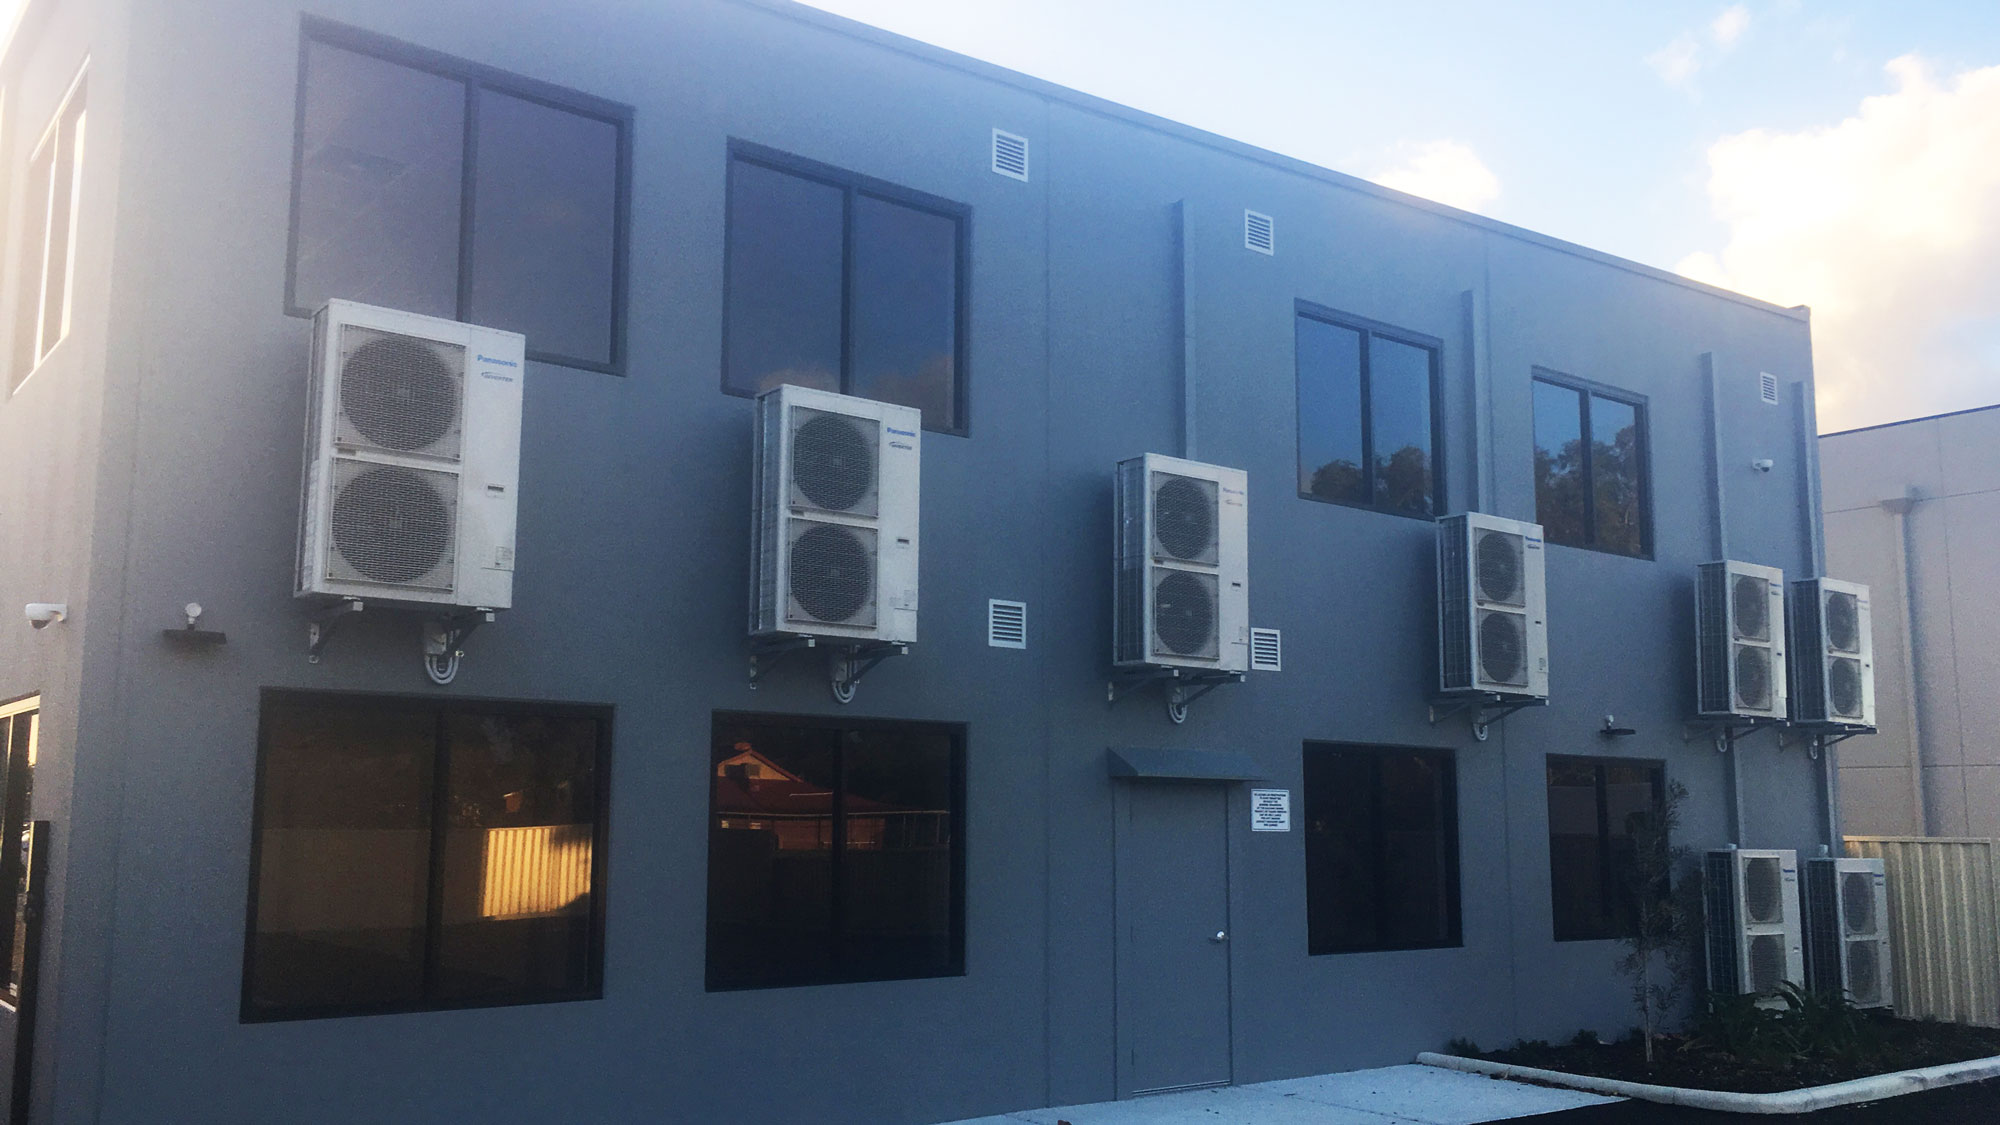 air conditioners on the side of a building